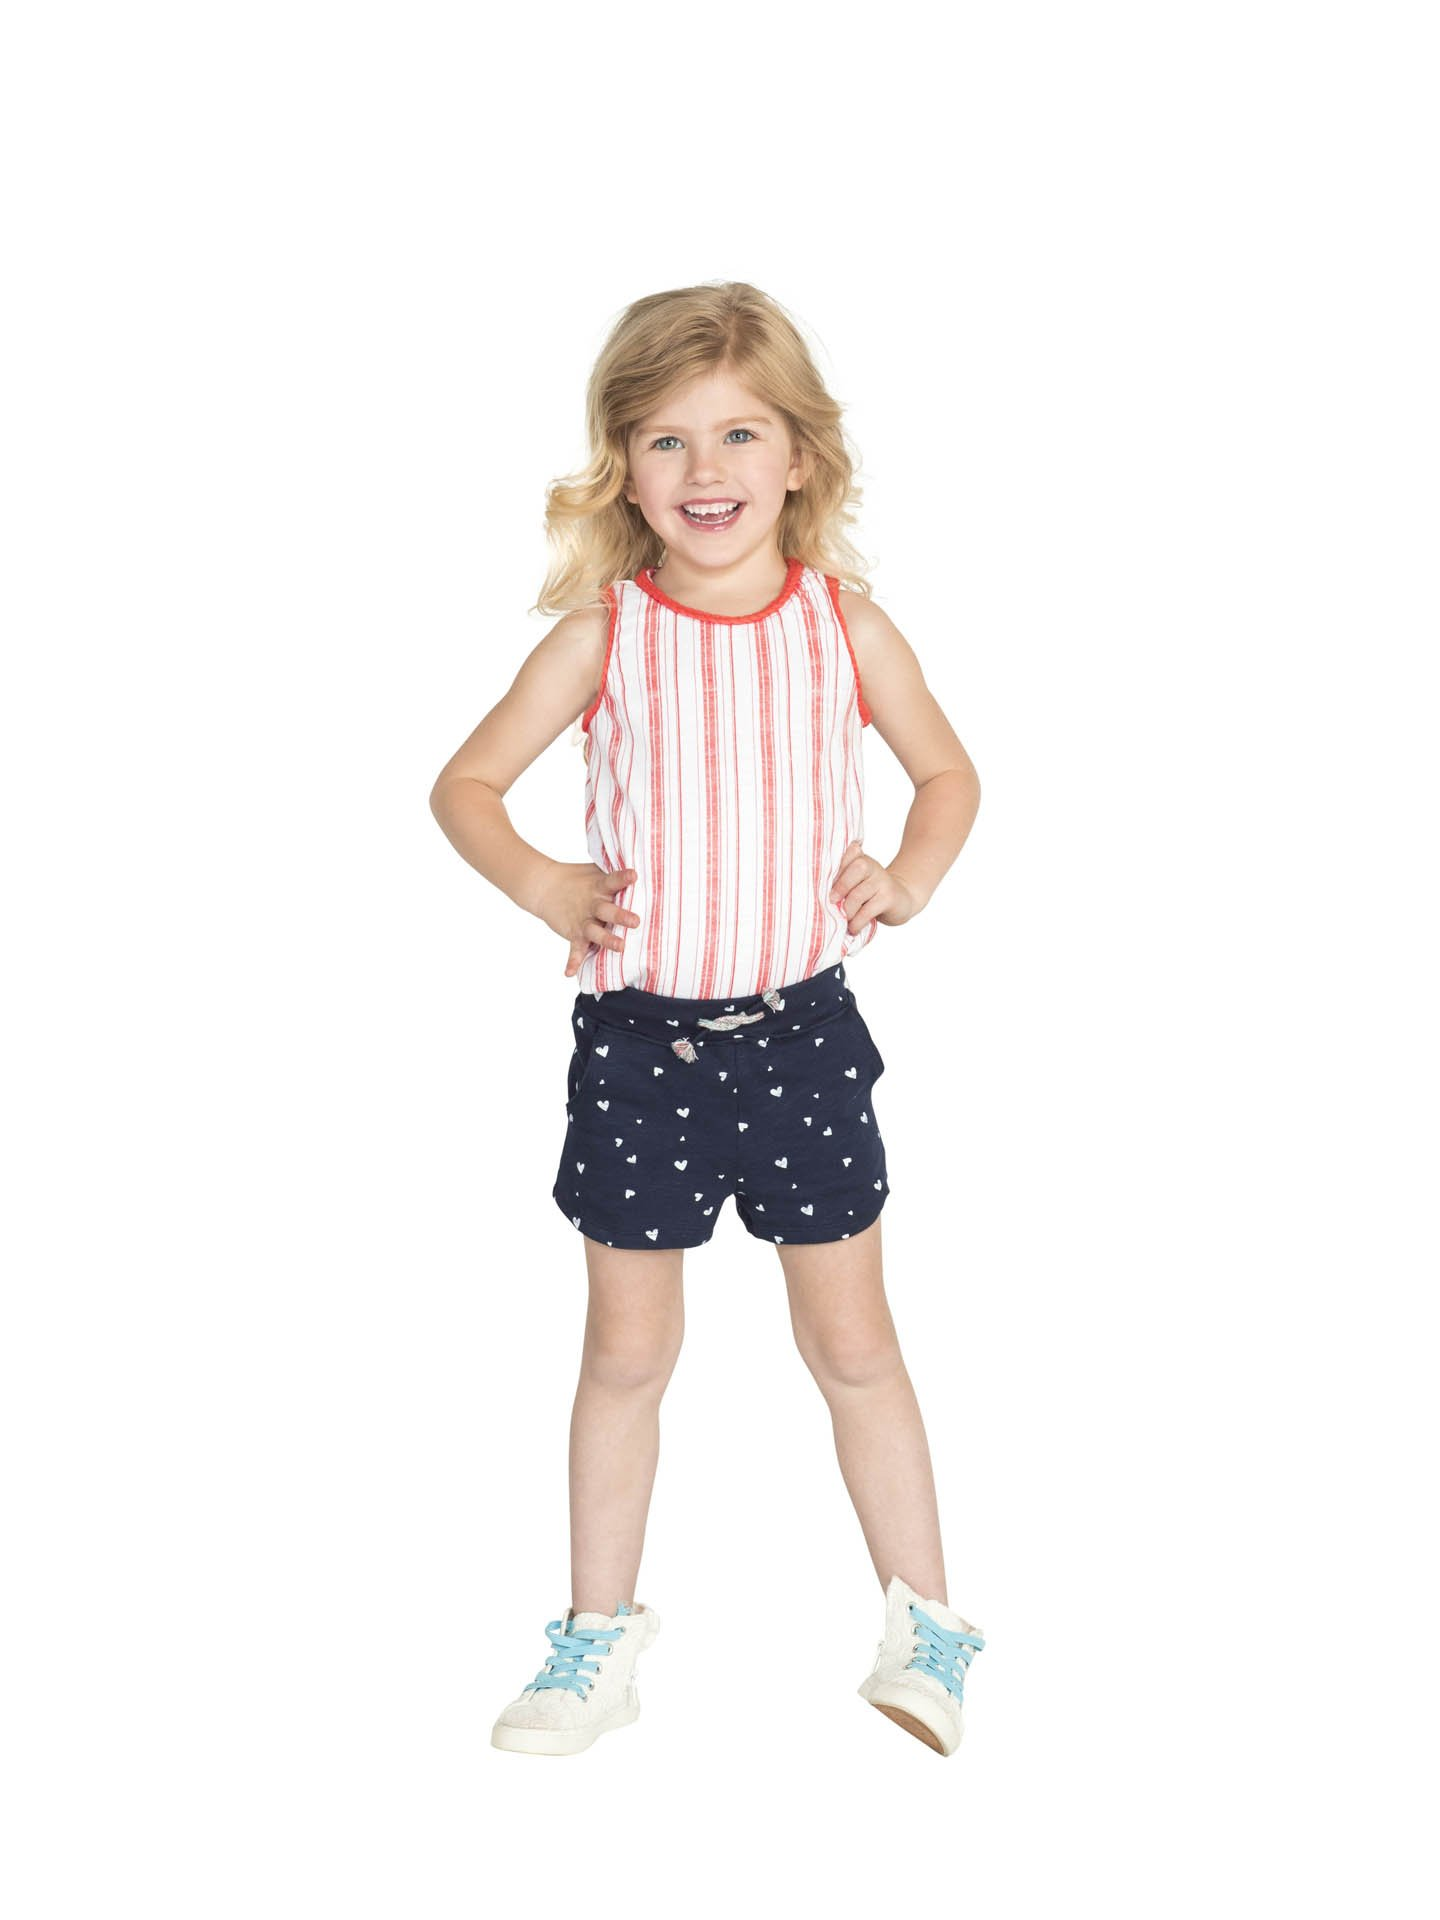 Colored Organics Girls Organic Nika Sport Shorts - Navy/White Heart Print - 2T by Colored Organics (Image #3)